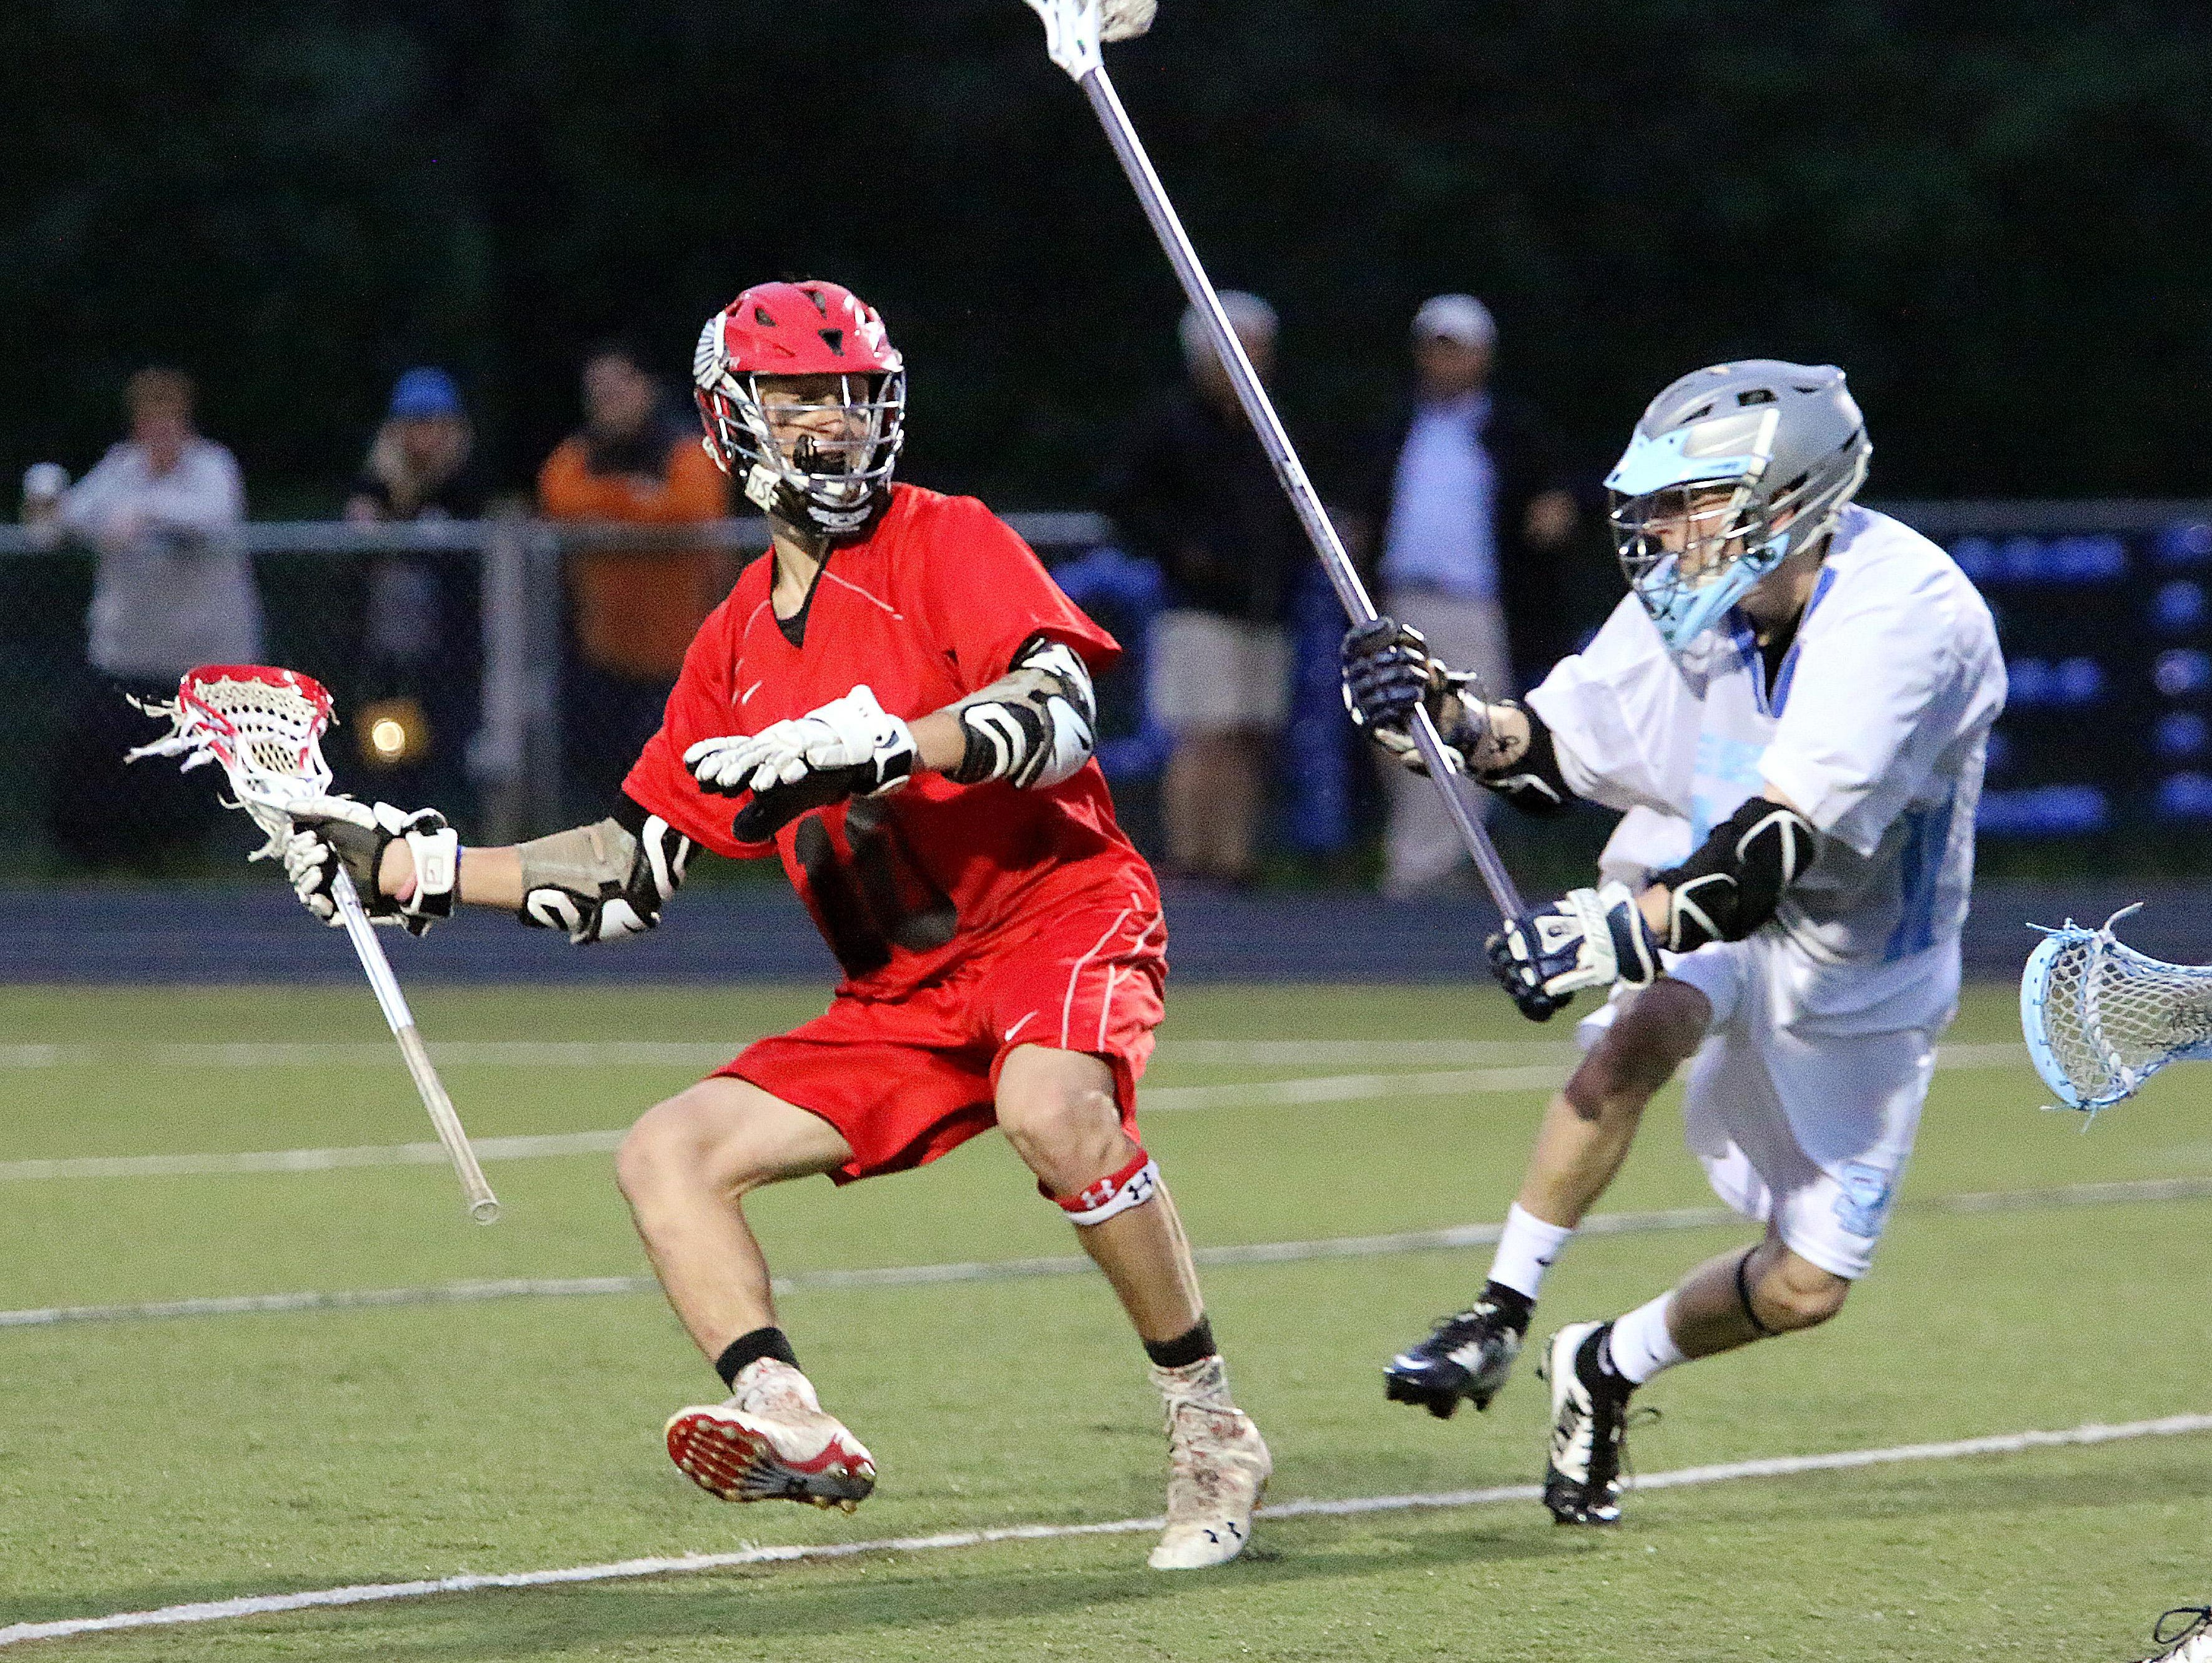 Champlain Valley's Griffin Diparlo, left, evades a South Burlington defender during the Redhawks 6-5 win over the Rebels on Monday night.